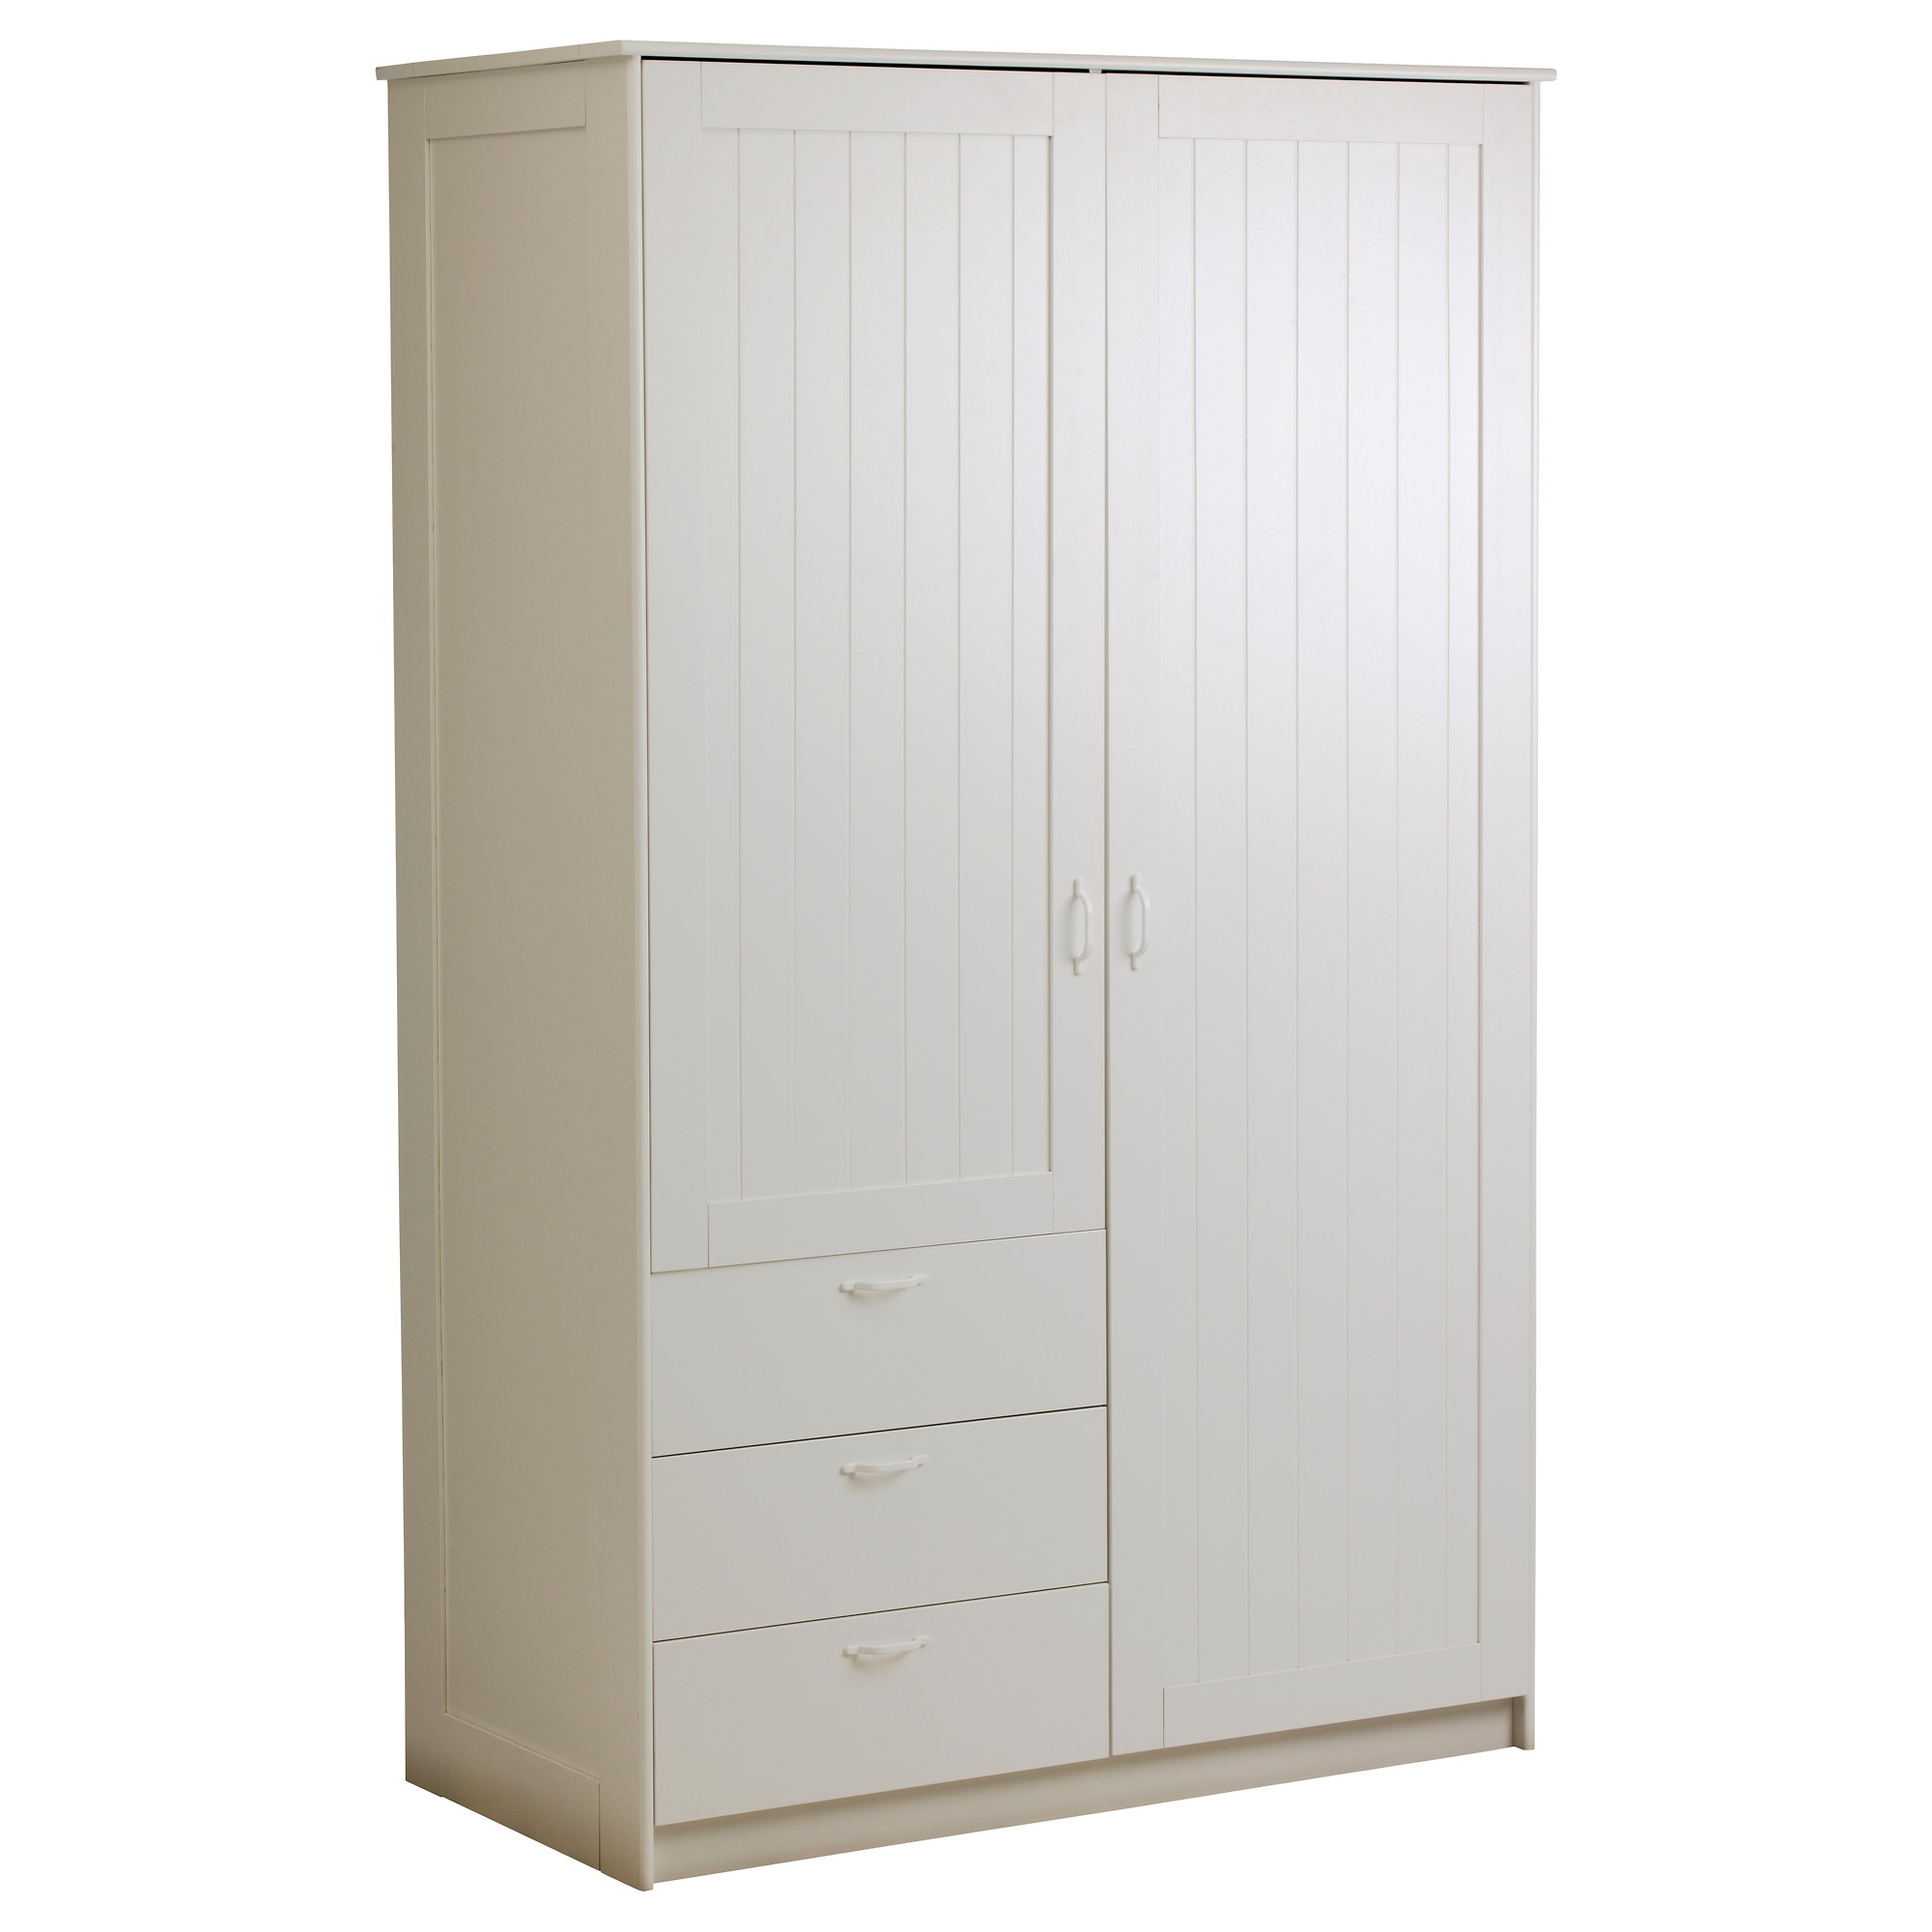 3 Door White Wardrobes With Drawers Regarding Current White 3 Door Wardrobe With Drawers Sliding Uk Children's Childs (View 5 of 15)